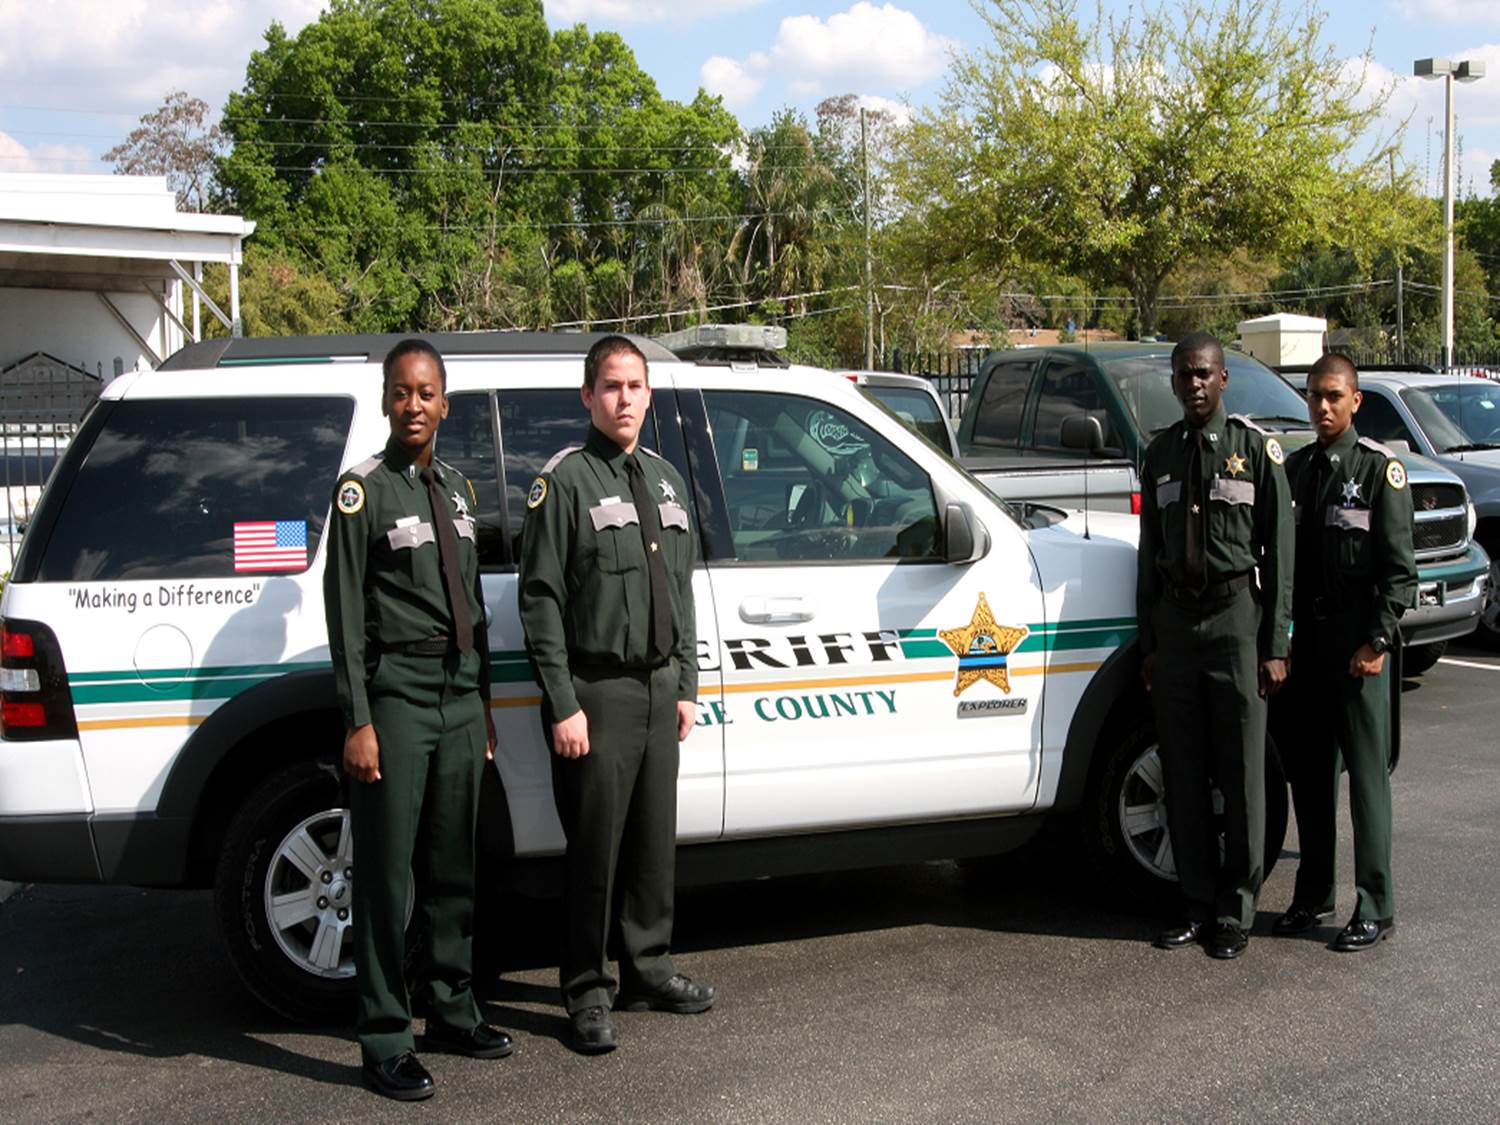 Orange County Sheriff's Office > Services > Administrative